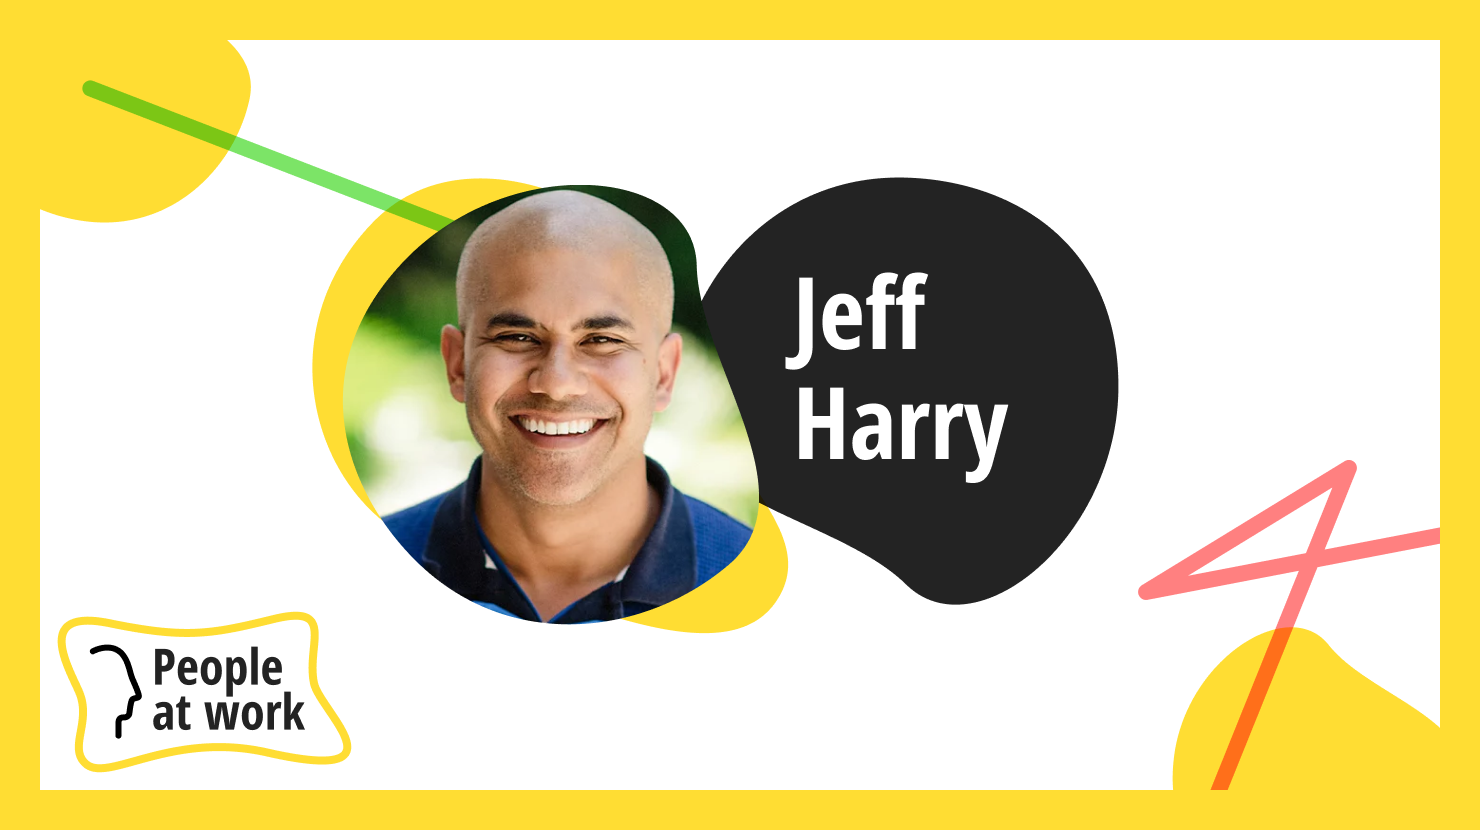 Play at work helps us adapt says Jeff Harry